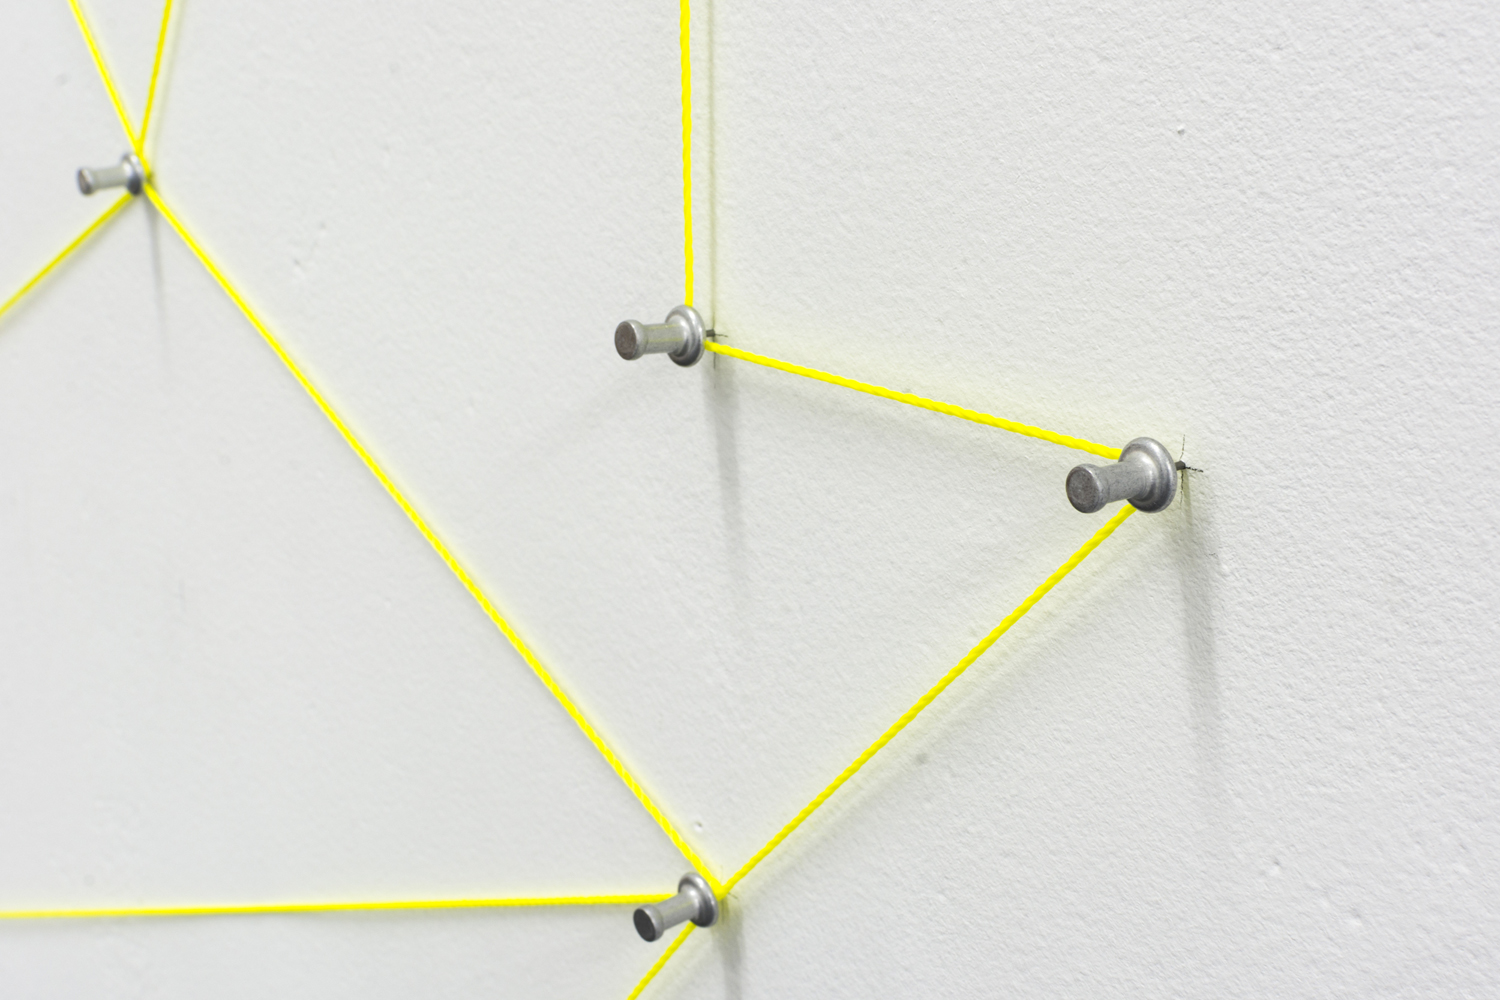 Annelies Jahn,  5 x 9 #2.1,  2017, string and pins, 230 x 325cm, Document Photography, 2019 | Courtesy the artists.